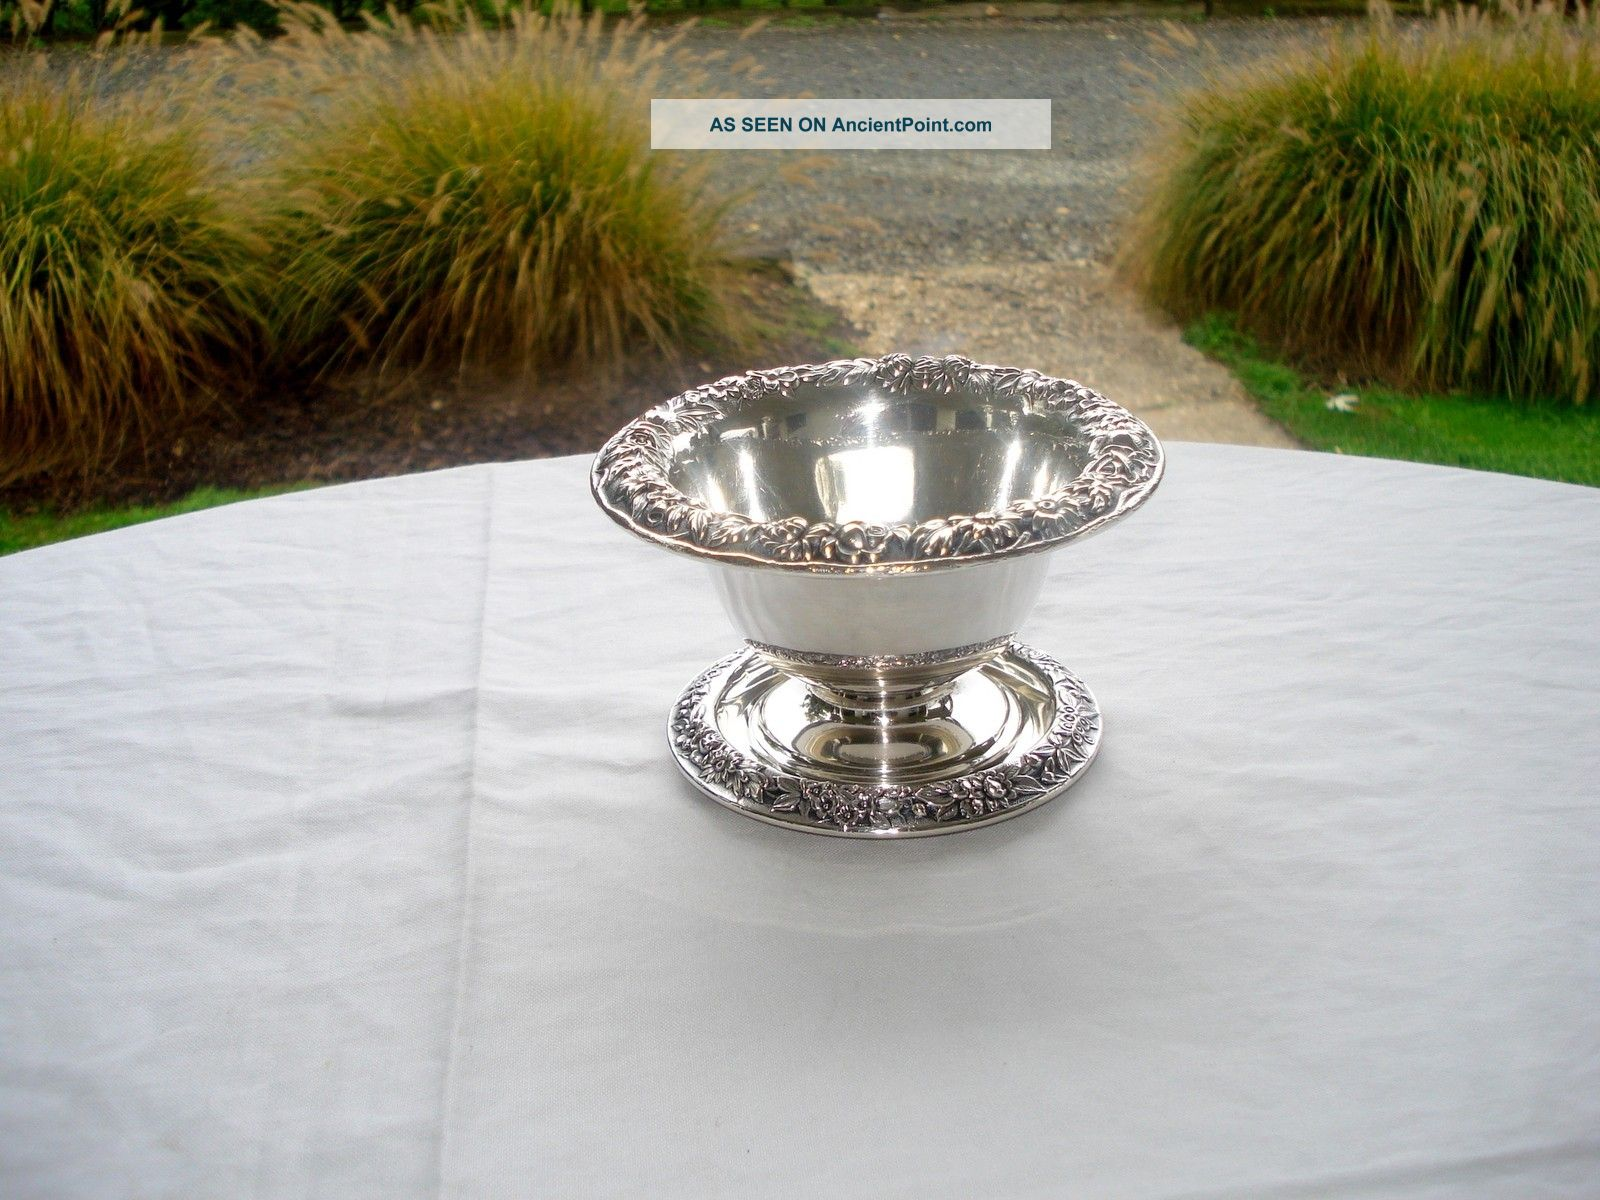 Antique S.  Kirk Repousse Sterling Silver Mayonnaise Bowl W/undertray,  6.  6 Ozt Bowls photo